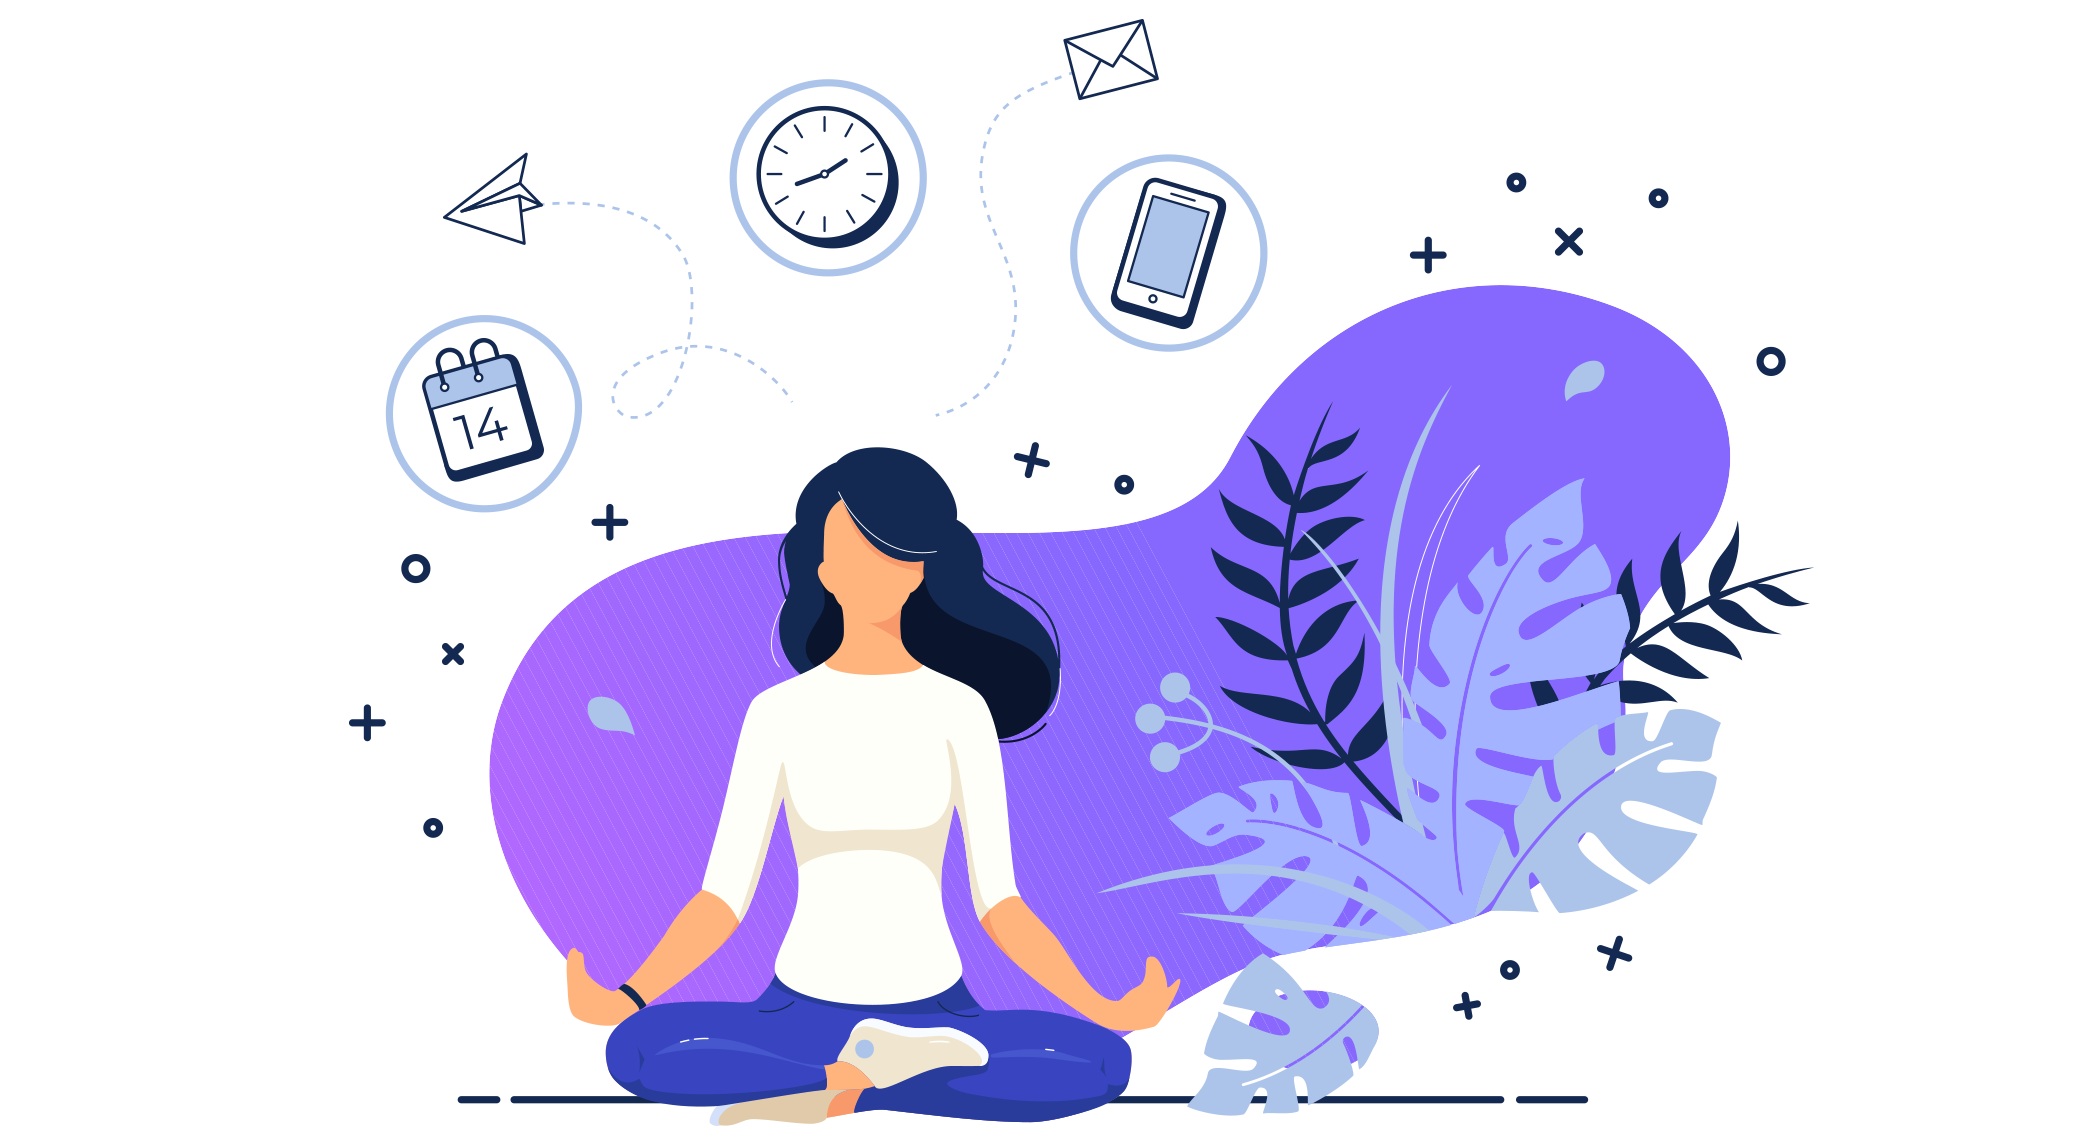 Illustration of woman taking a break from work to meditate